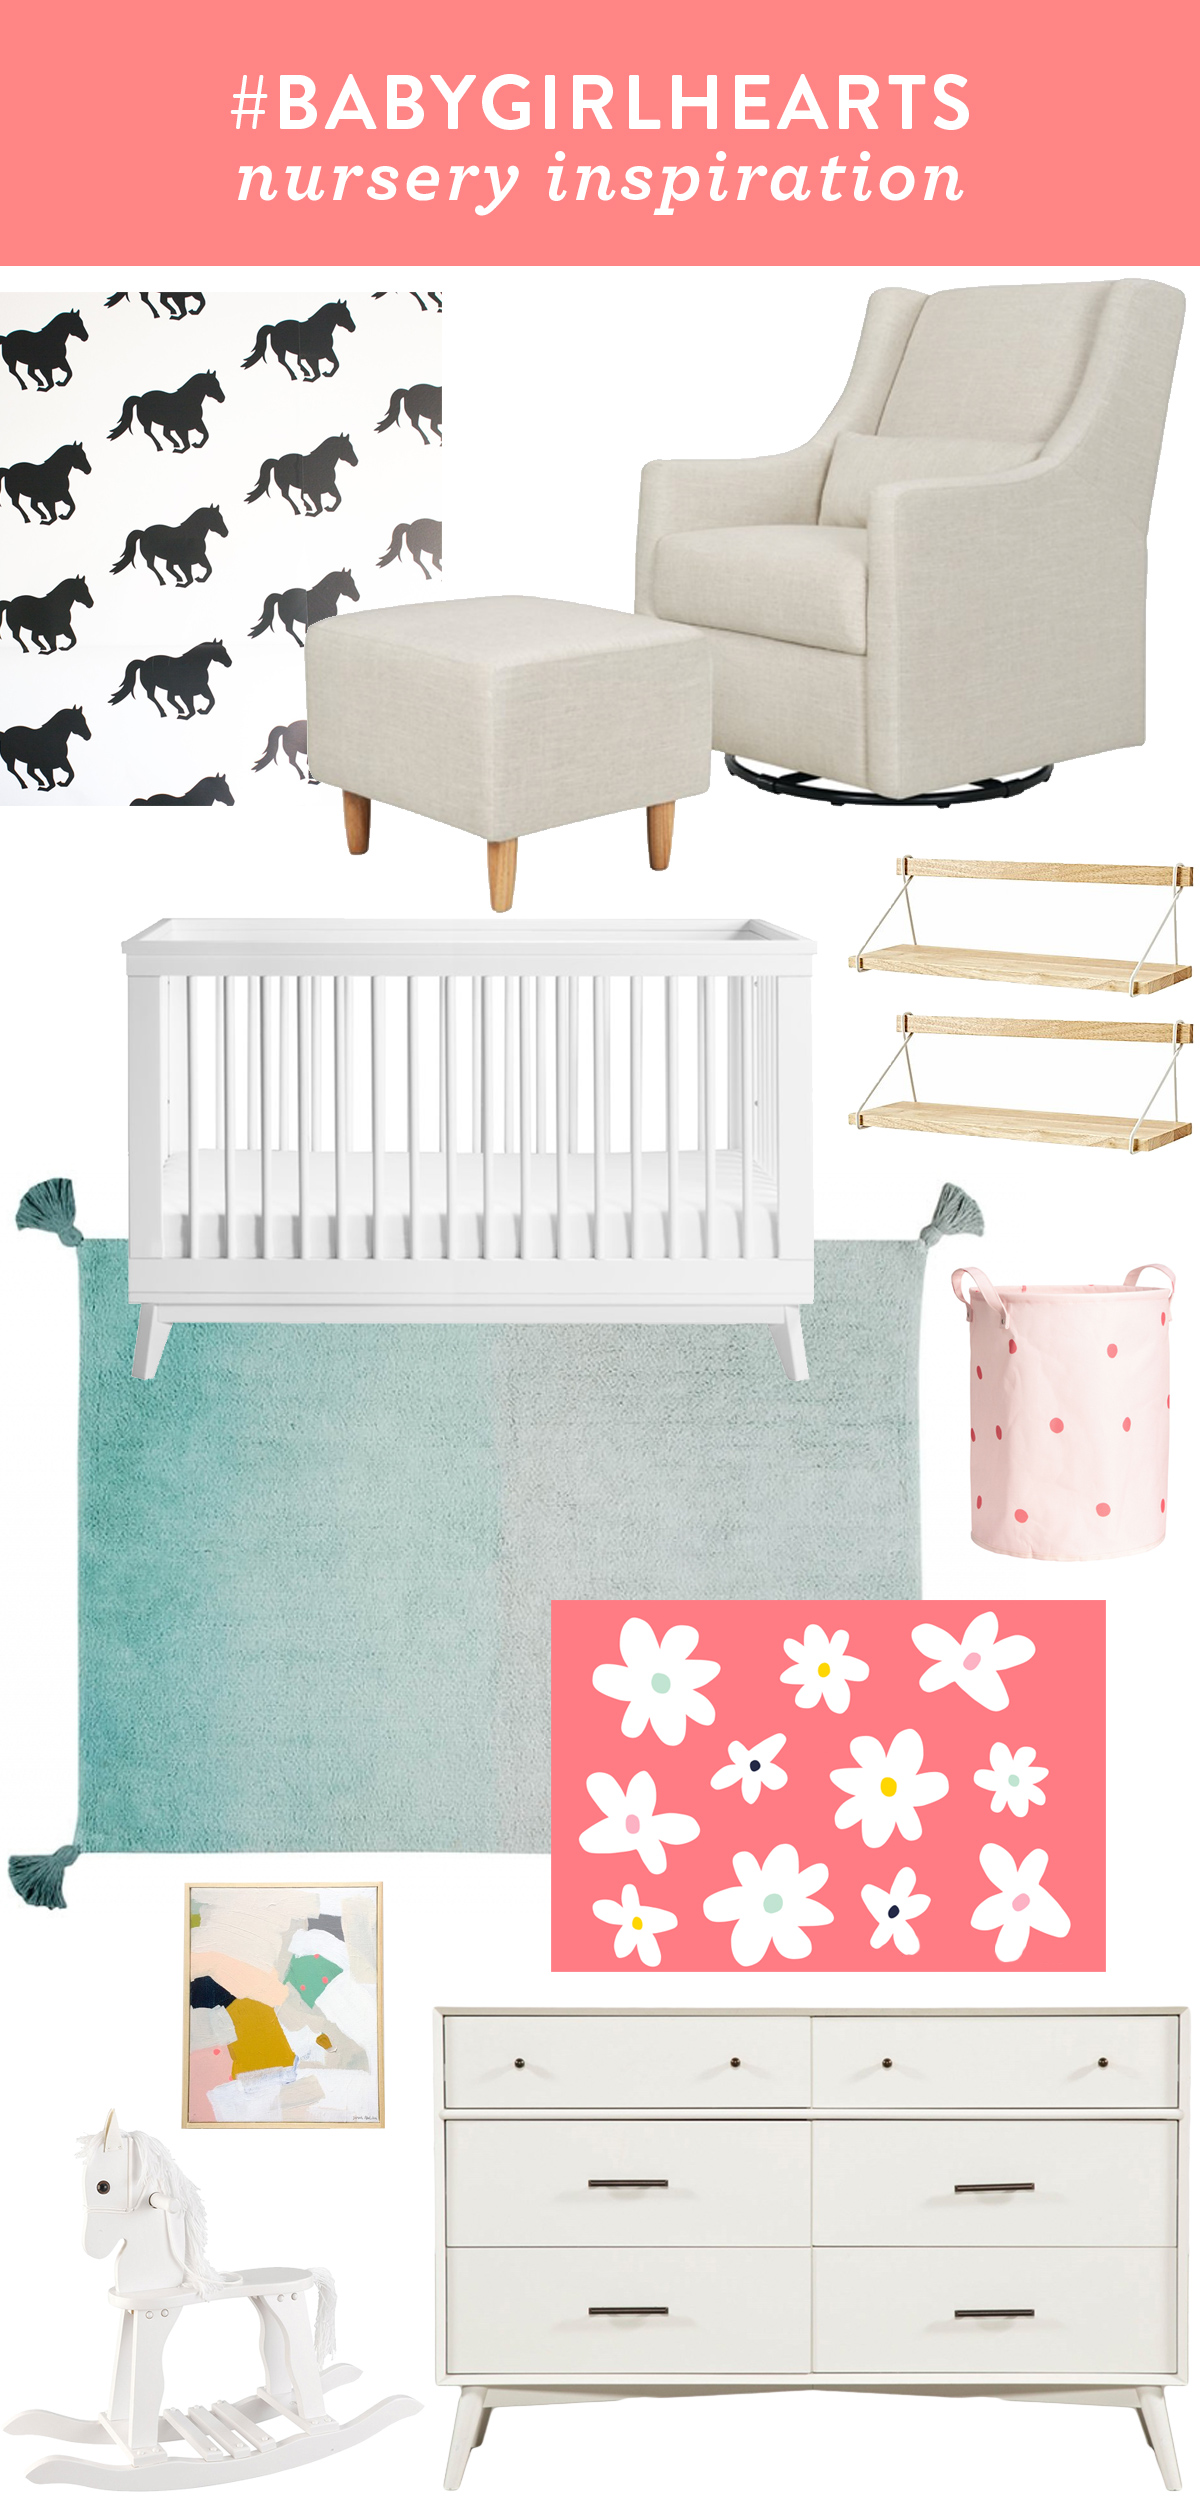 Modern, minimal baby girl nursery inspiration board with a pop of color and pattern